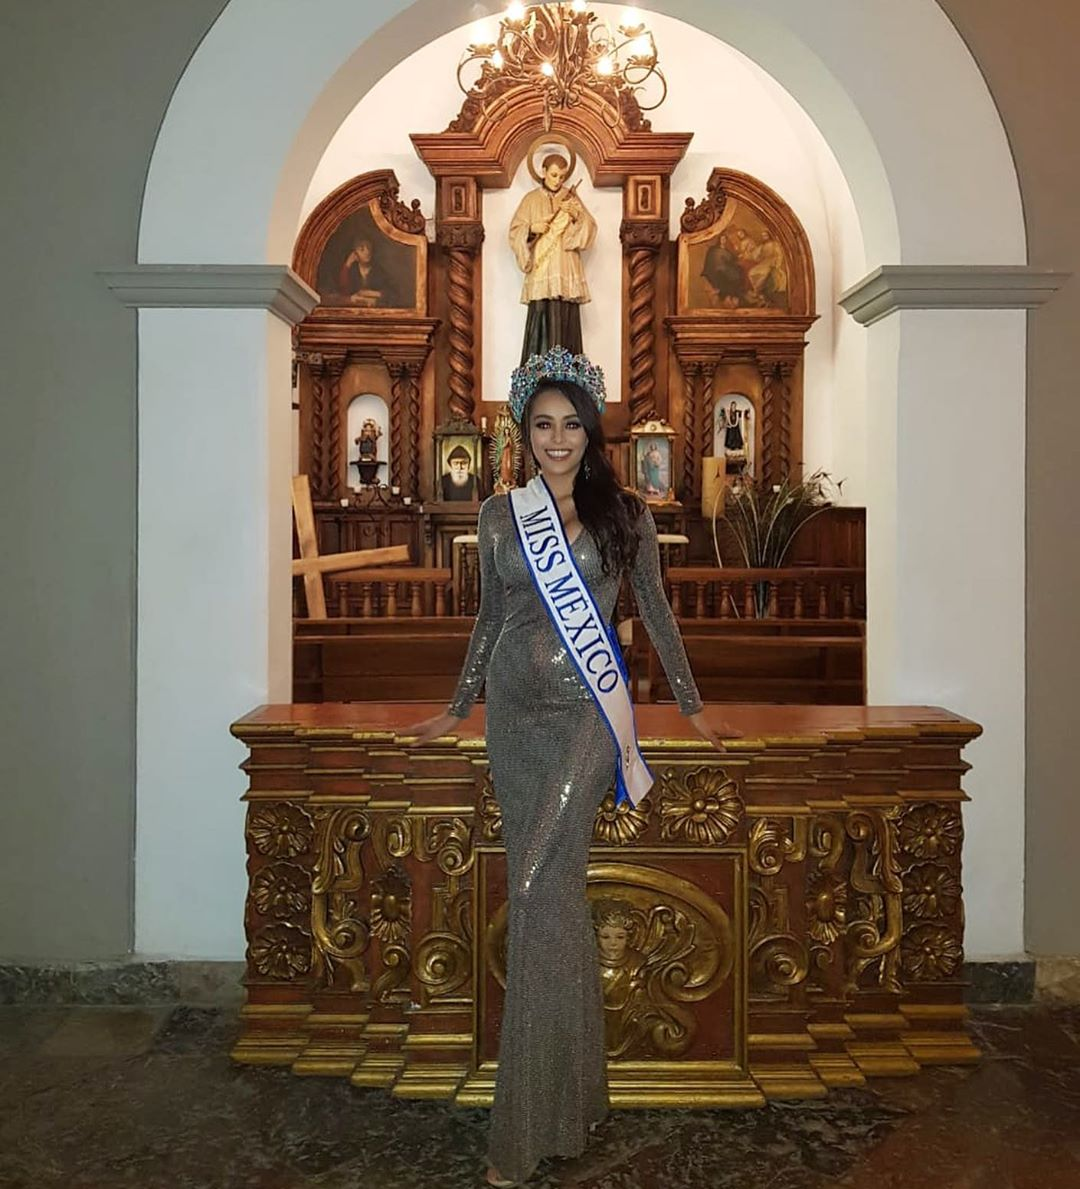 ashley alvidrez, top 12 de miss world 2019. - Página 6 72568210